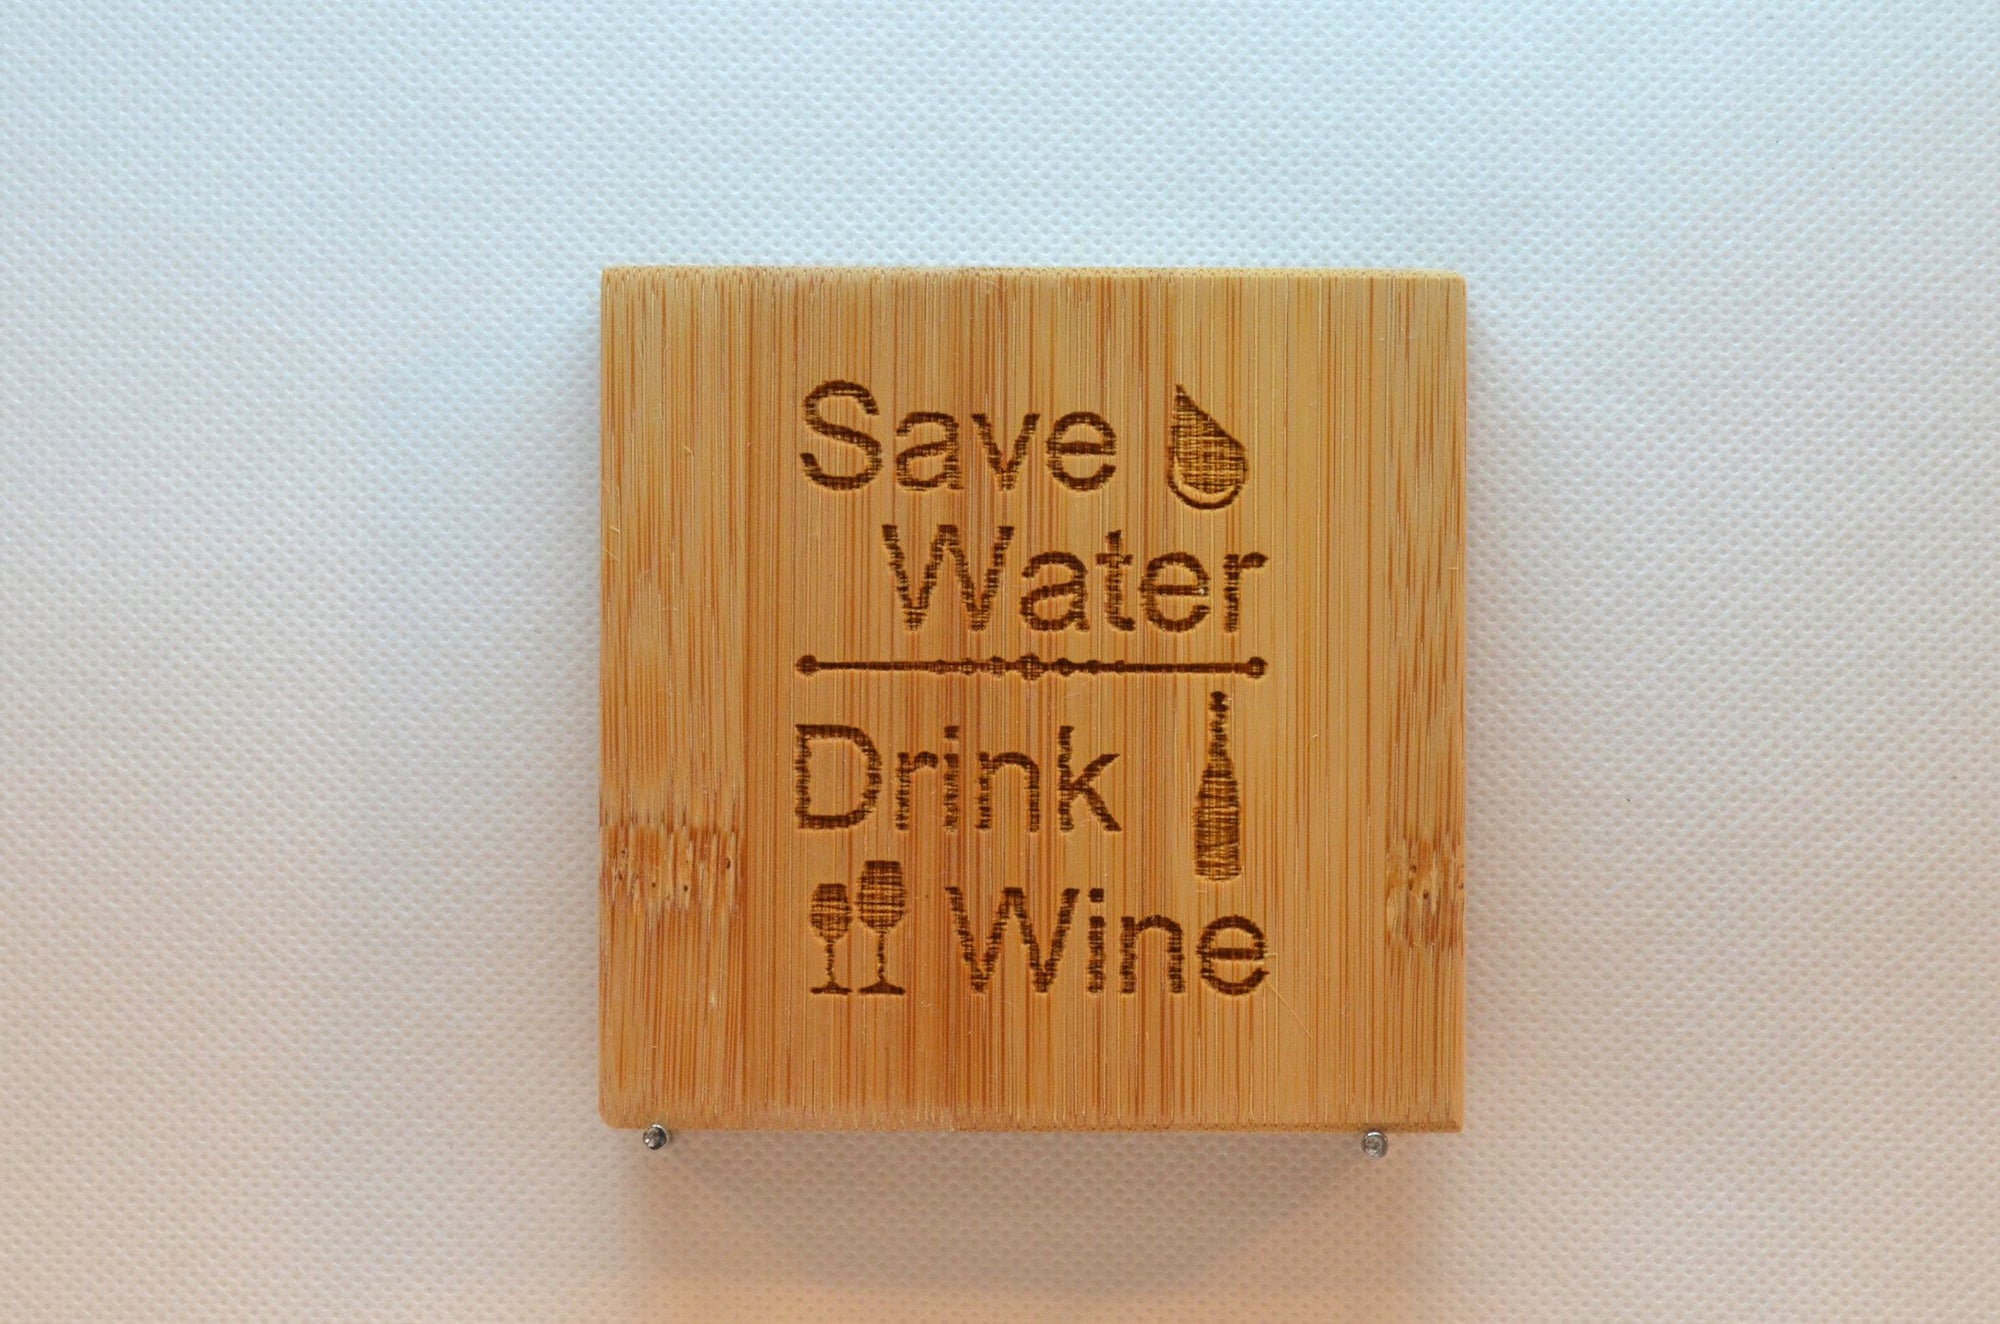 Laser Engraved Bamboo Coaster - Save water drink wine